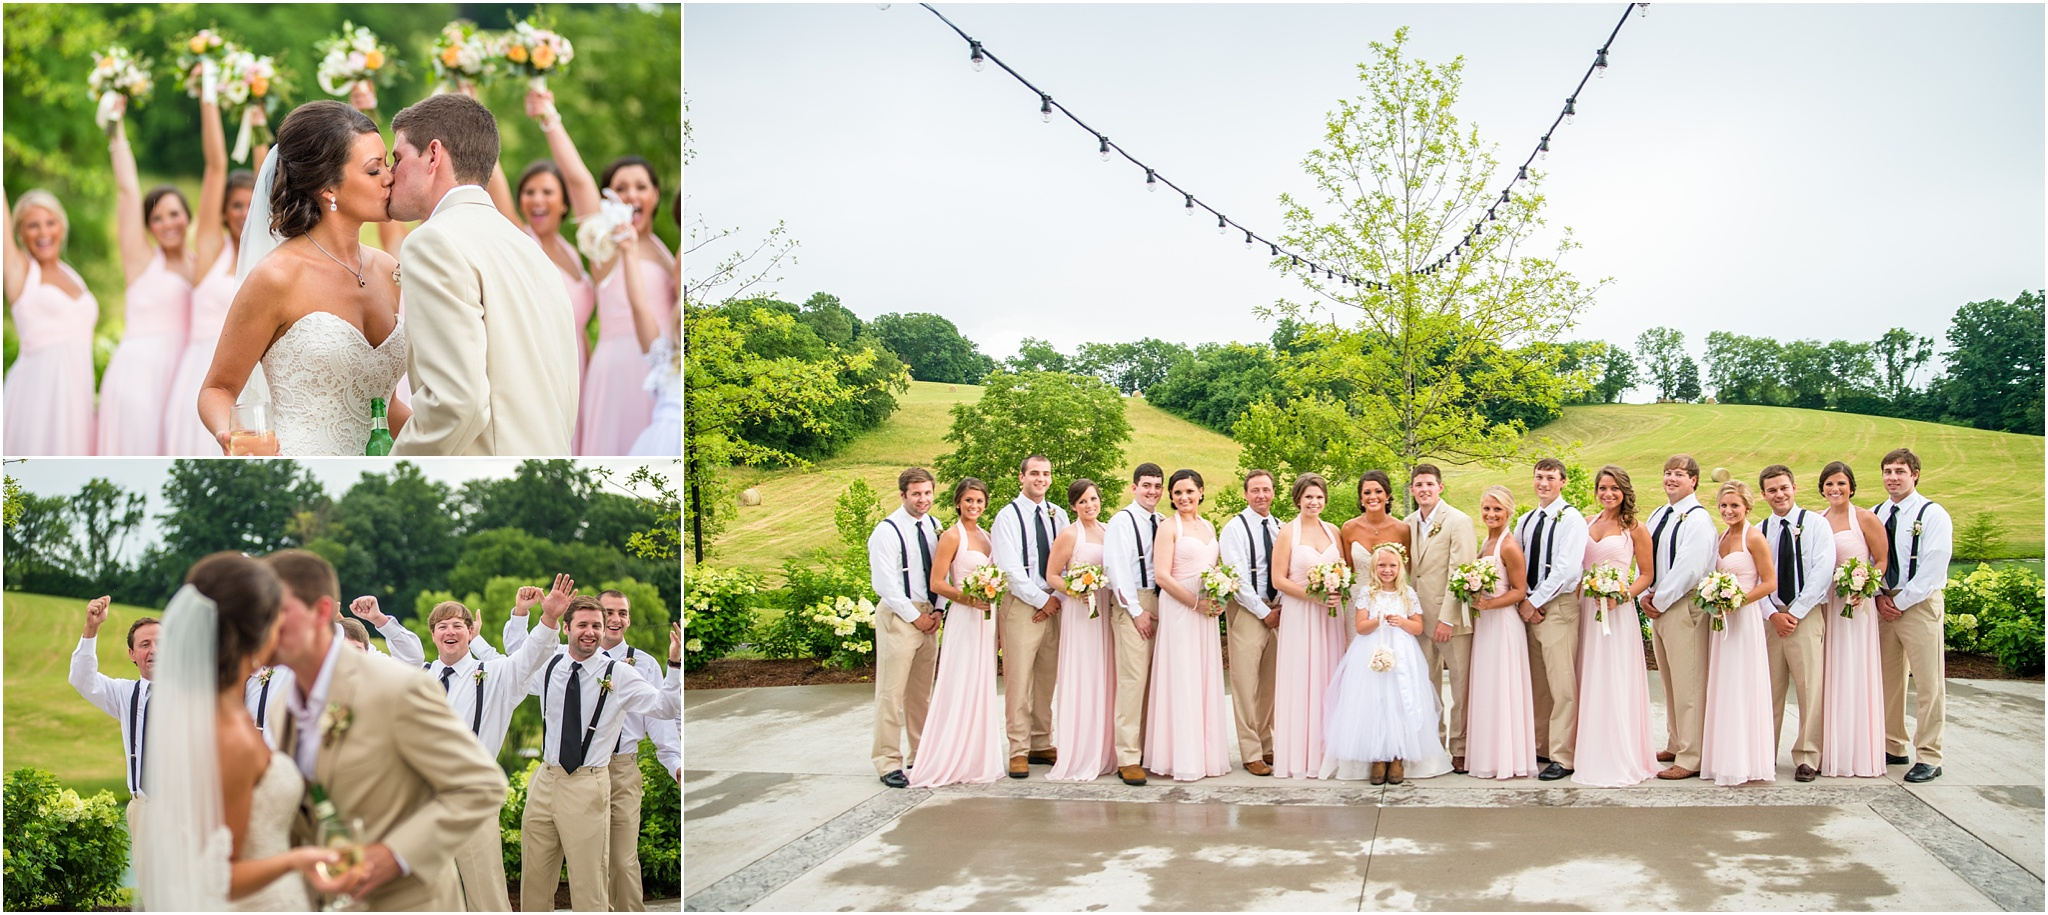 Greg Smit Photography Nashville wedding photographer Mint Springs Farm 11